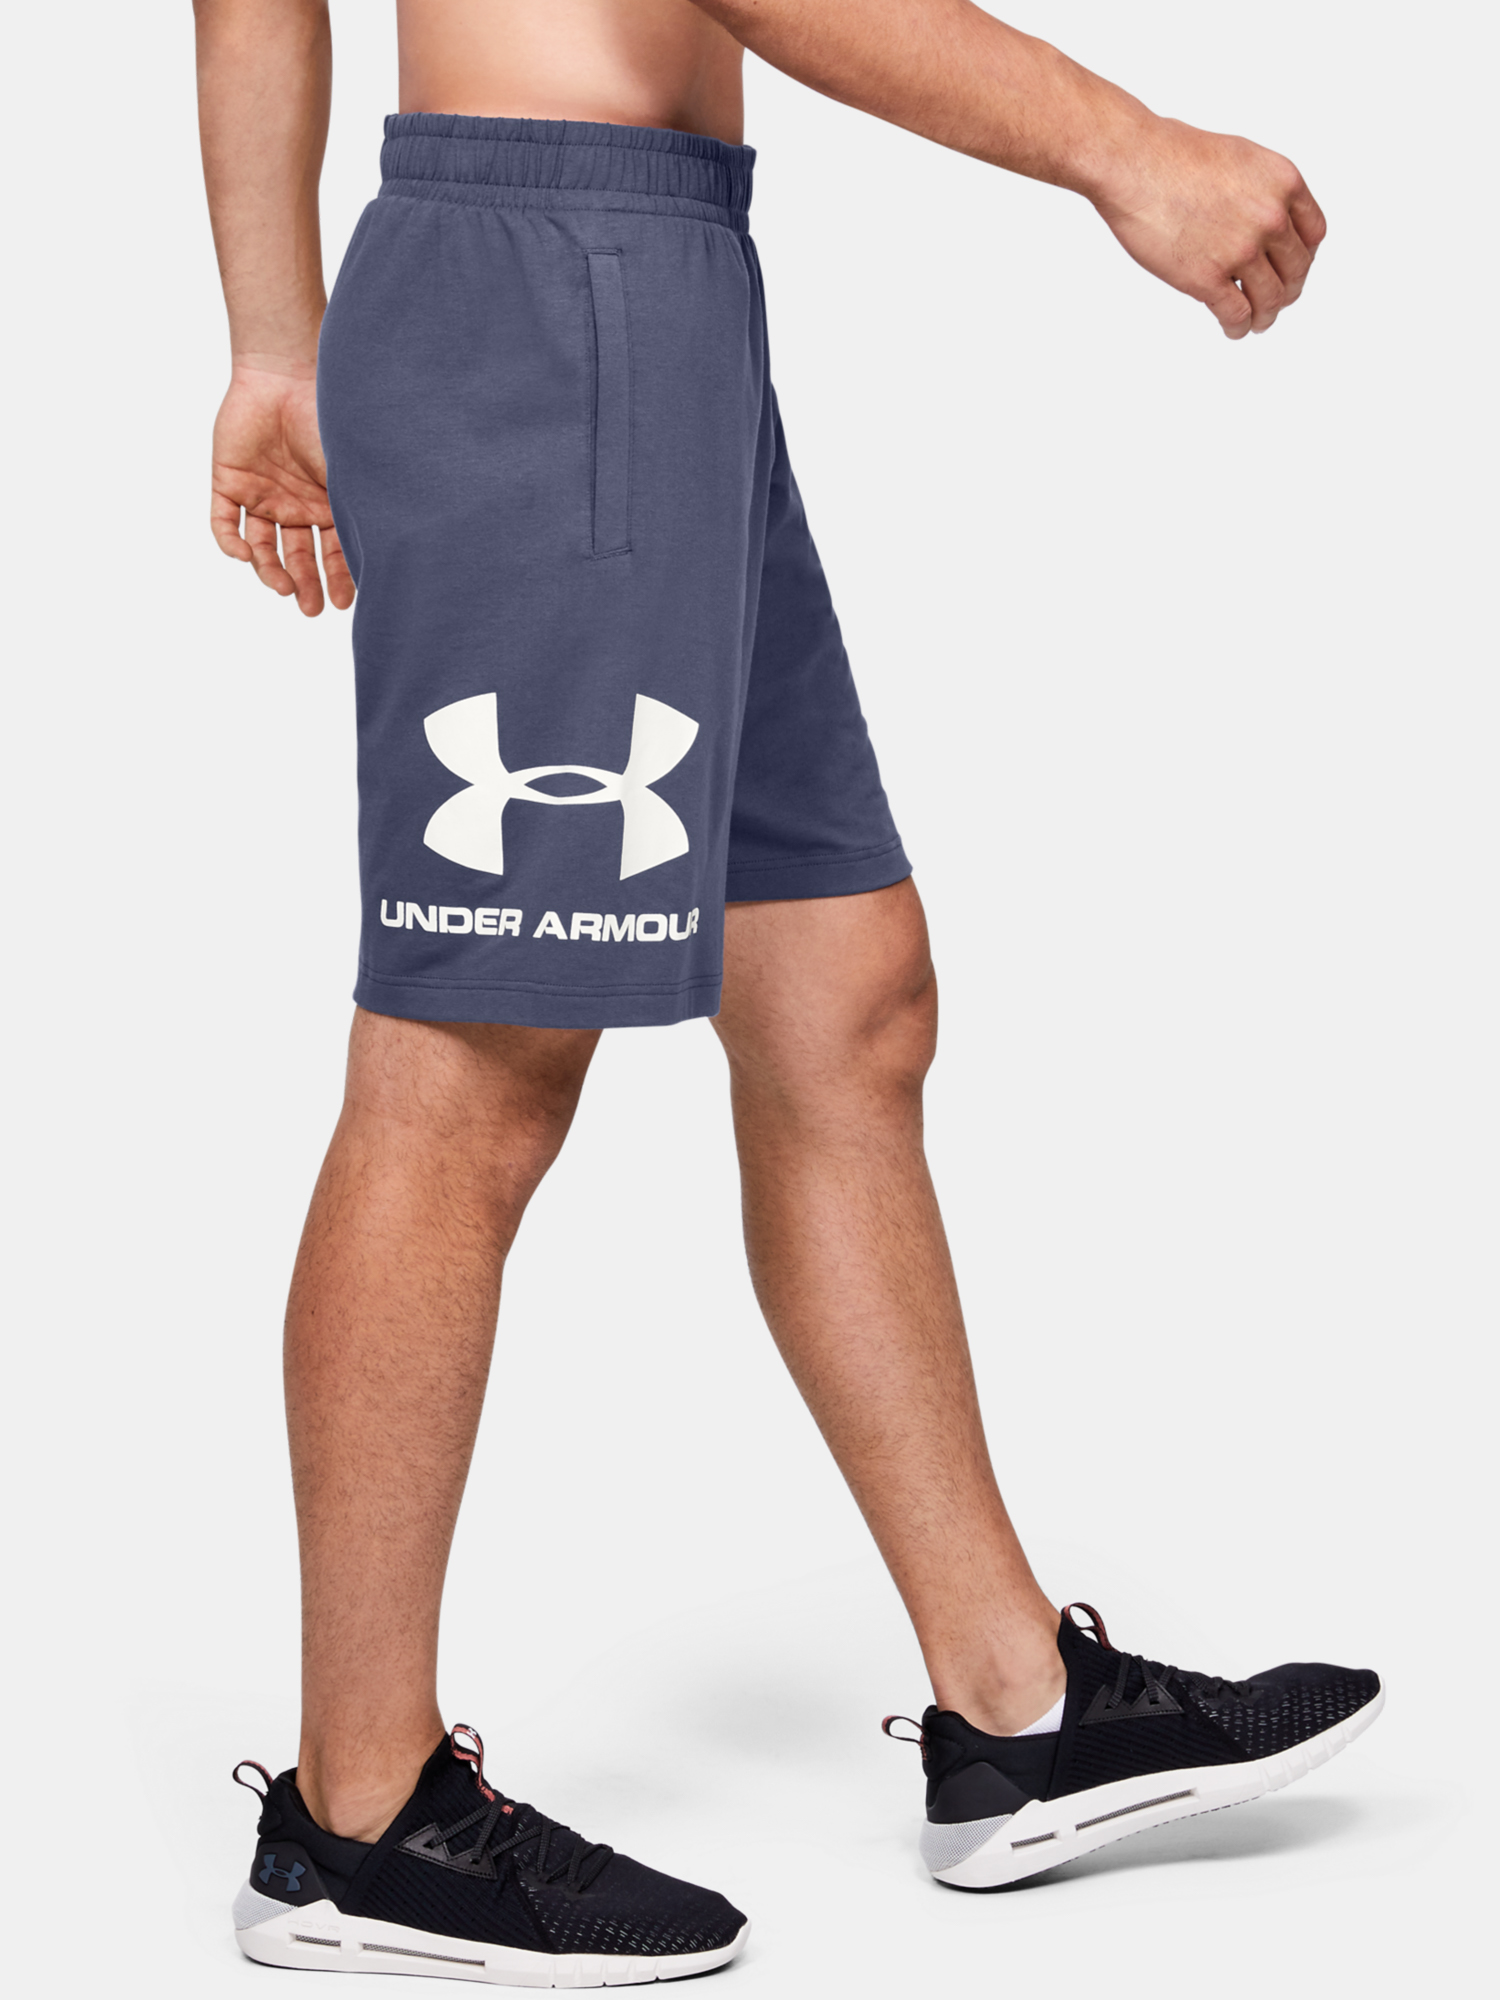 Kraťasy Under Armour Cotton Big Logo Shorts (3)